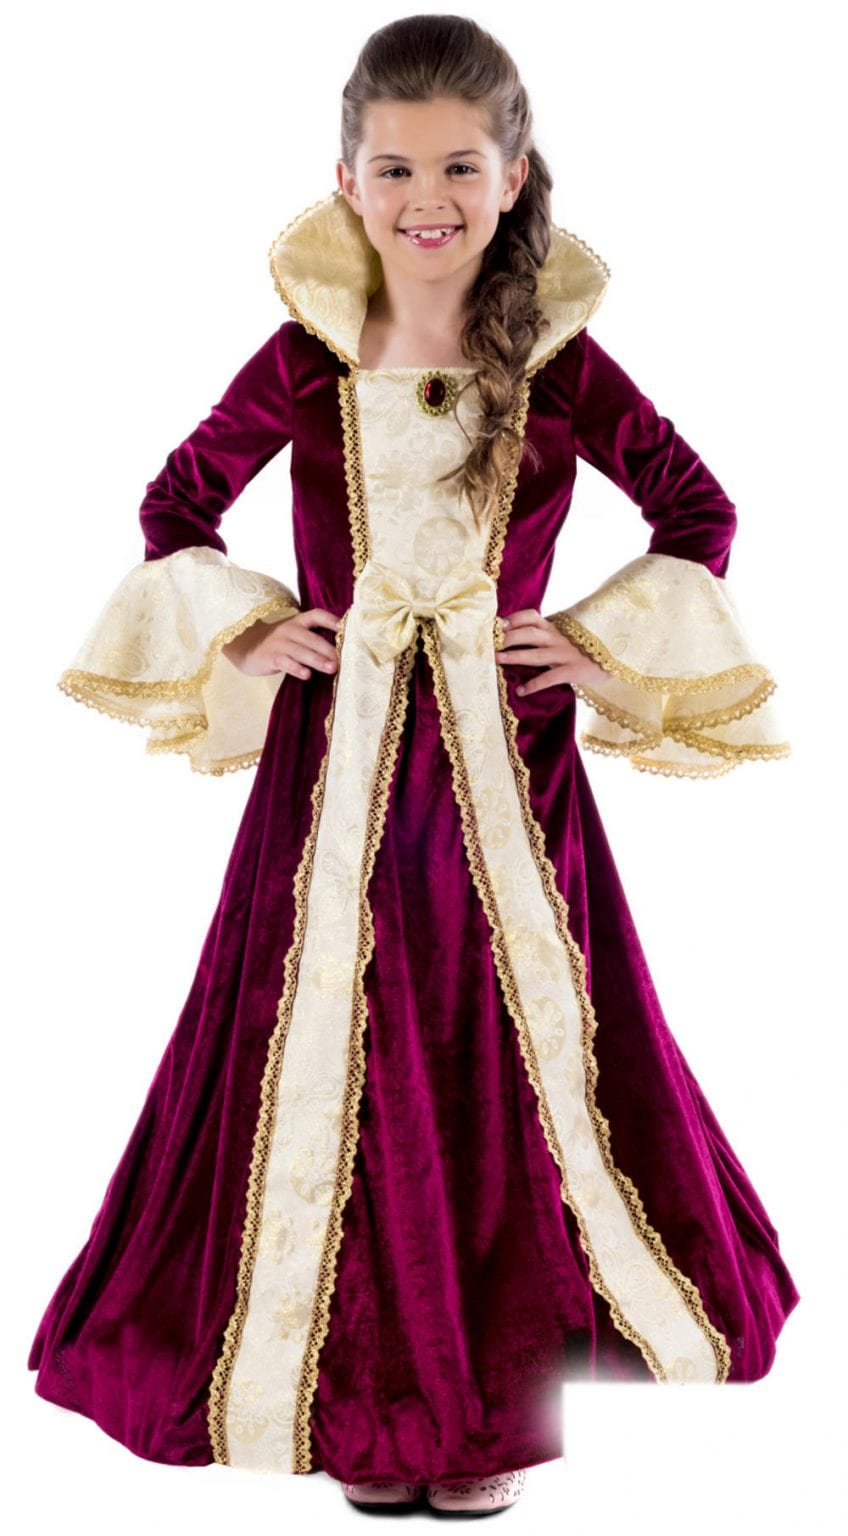 Royal Ball Gown Victoria Children's Fancy Dress Costume